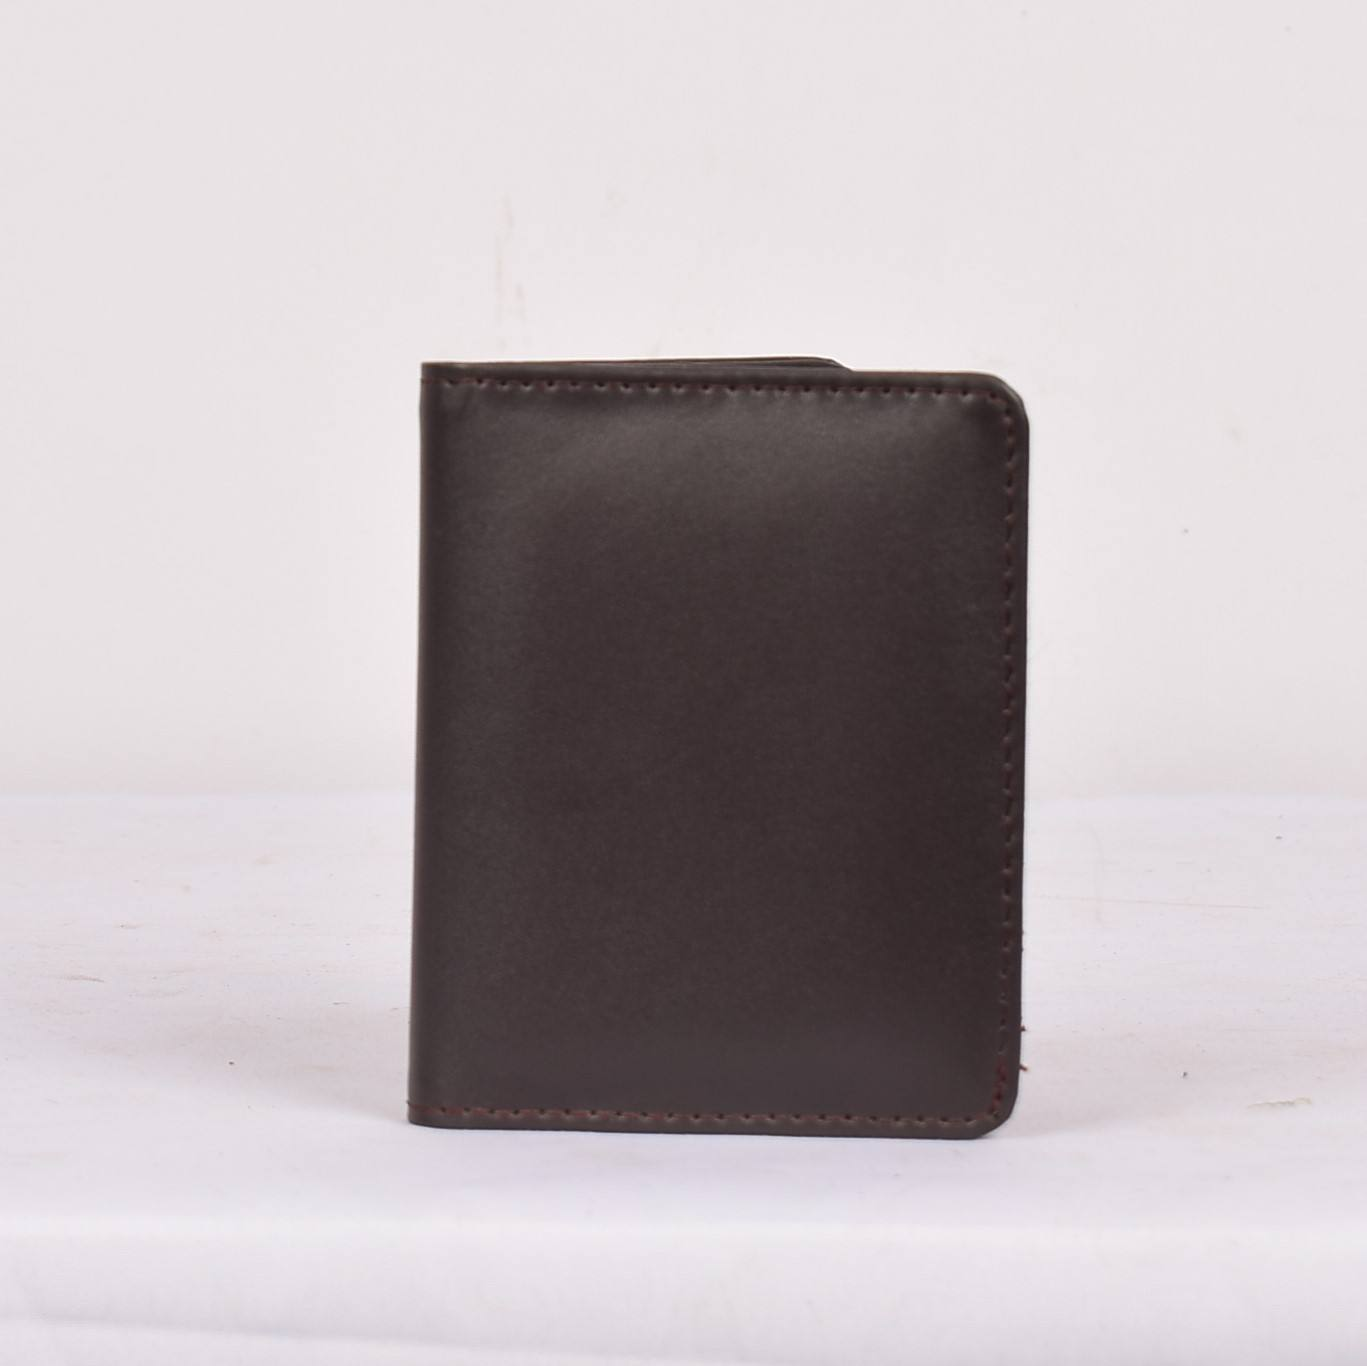 cow pure leather Handmade Vintage Leather card holder and wallet unisex